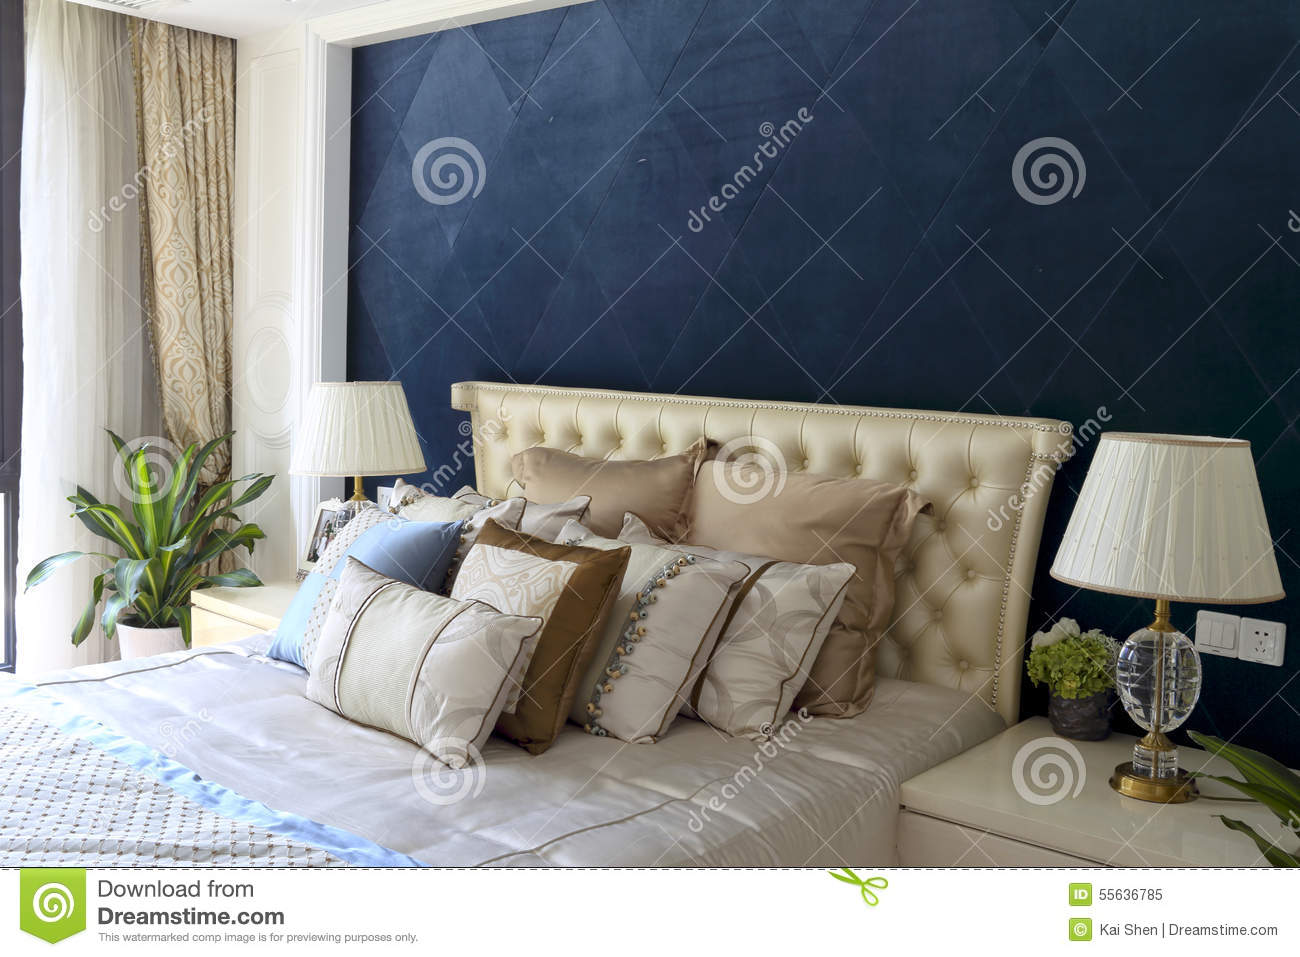 chambre bleu pastel. Black Bedroom Furniture Sets. Home Design Ideas